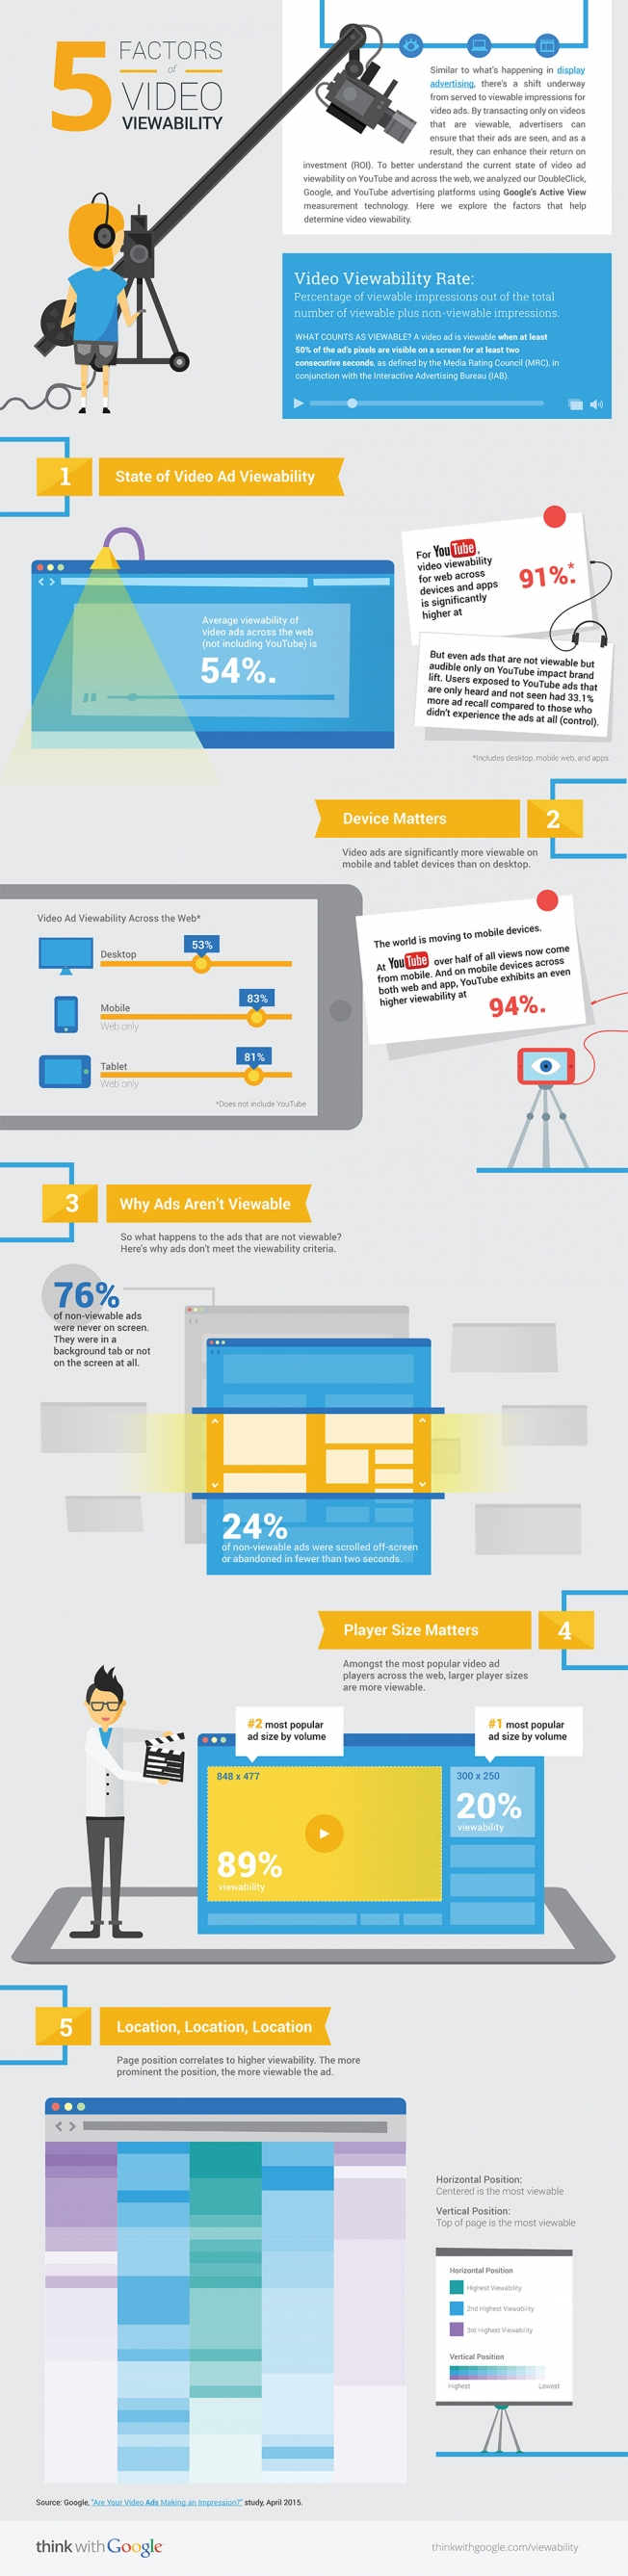 Infographic about video viewability